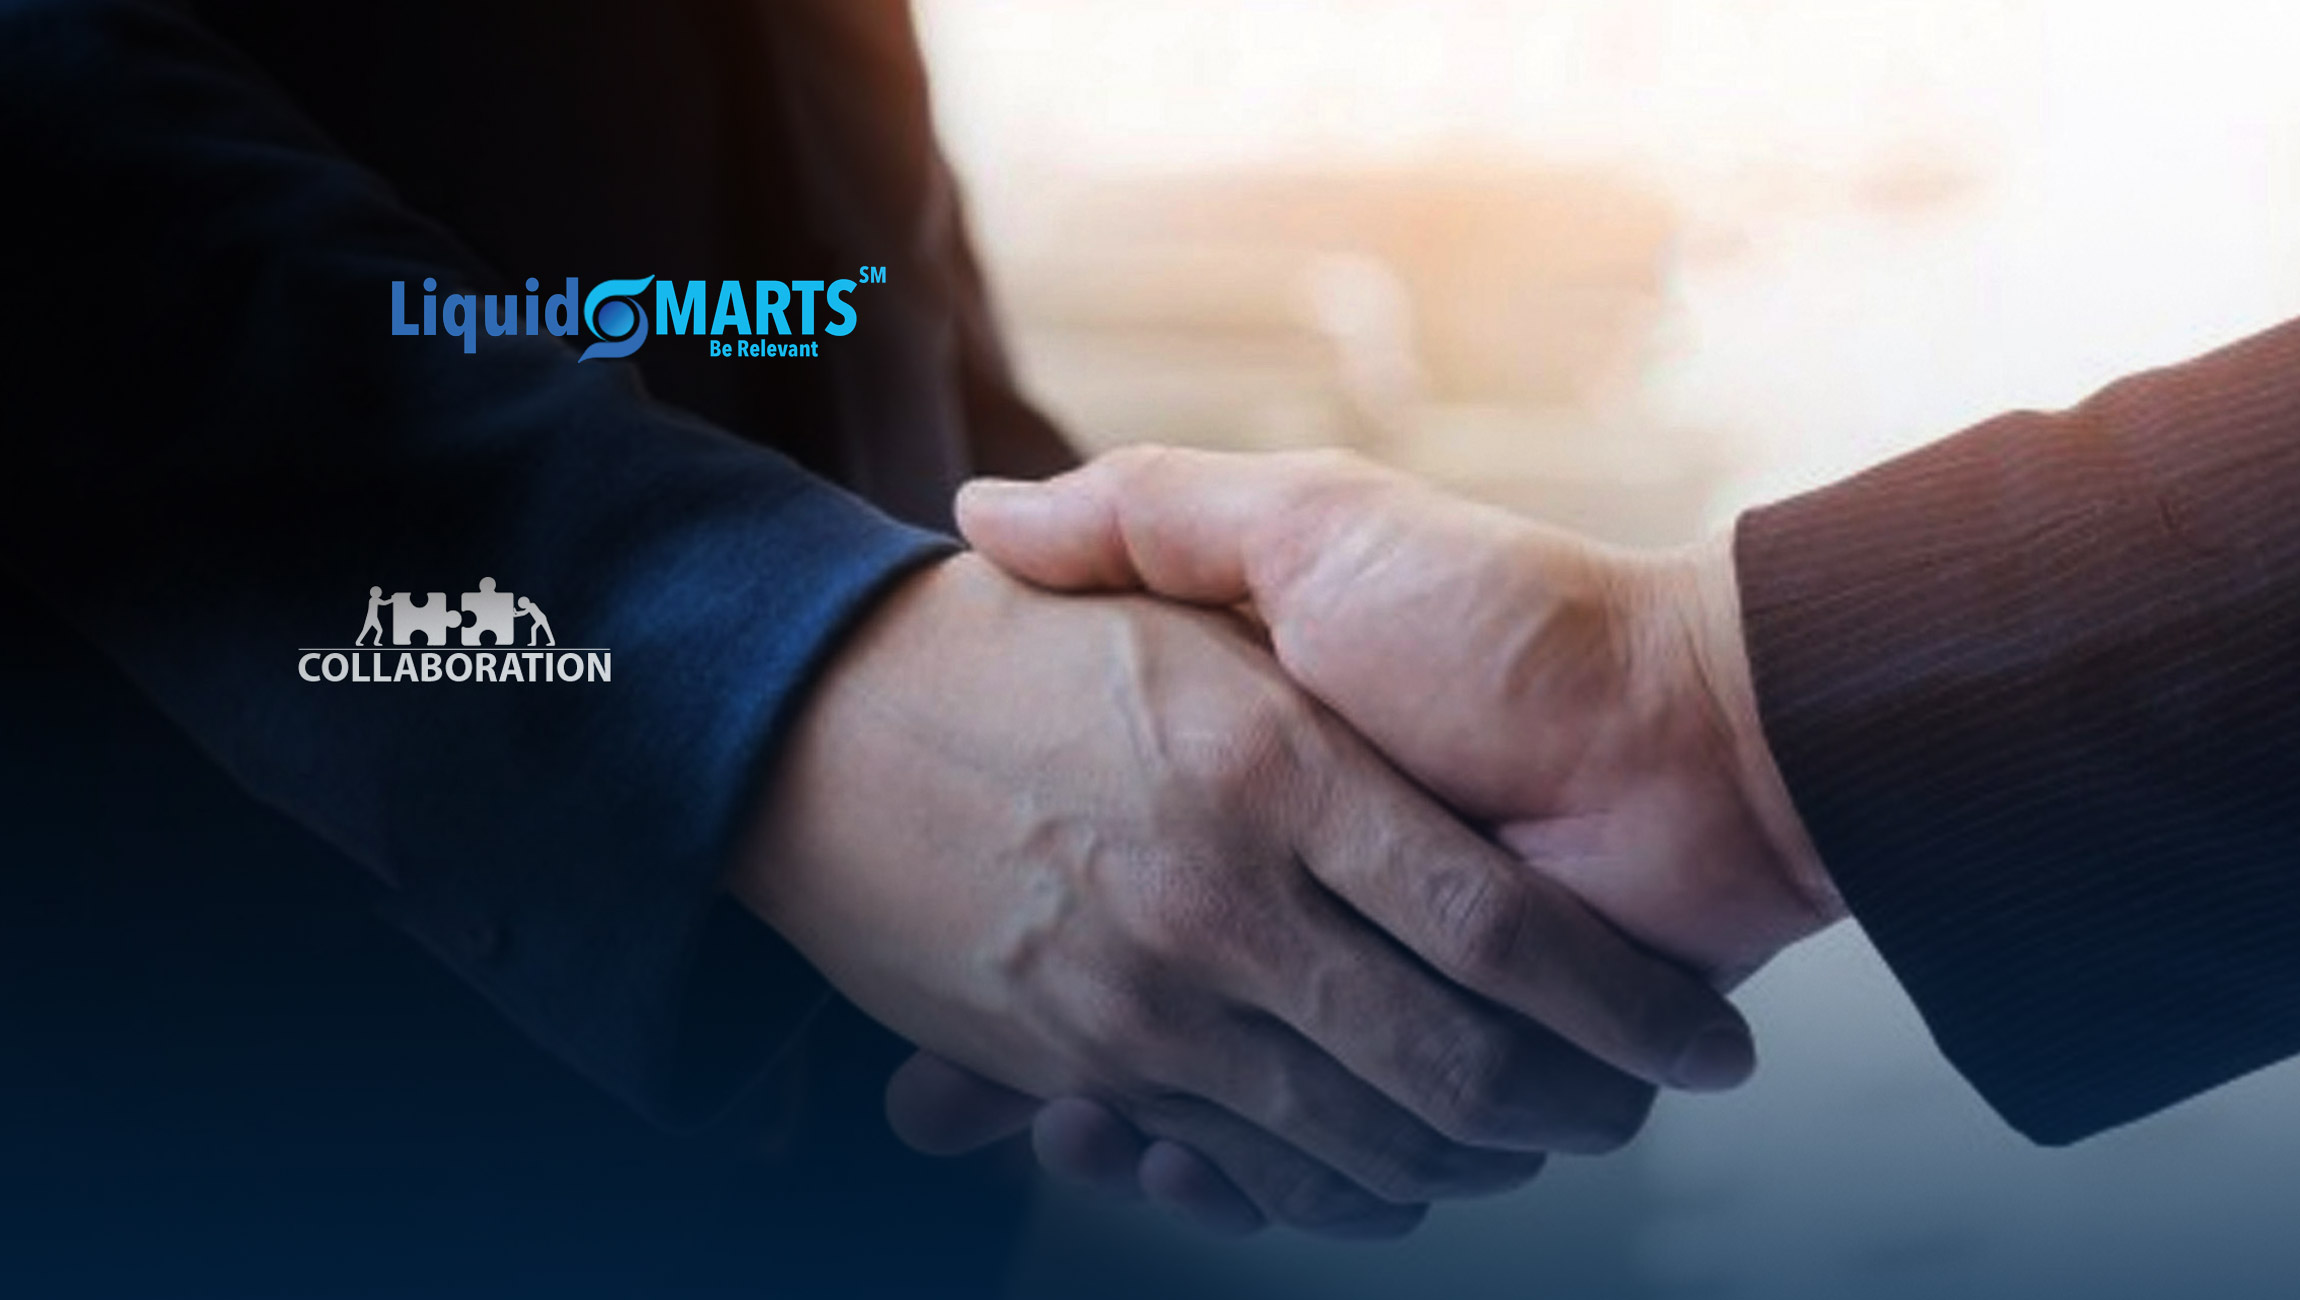 Regalix Nytro and LiquidSMARTS(SM) Form a Strategic Partnership Creating a Powerful Combined Solution in Sales Enablement, to Increase Relevance and Alignment Between Marketing and Sales Teams Globally